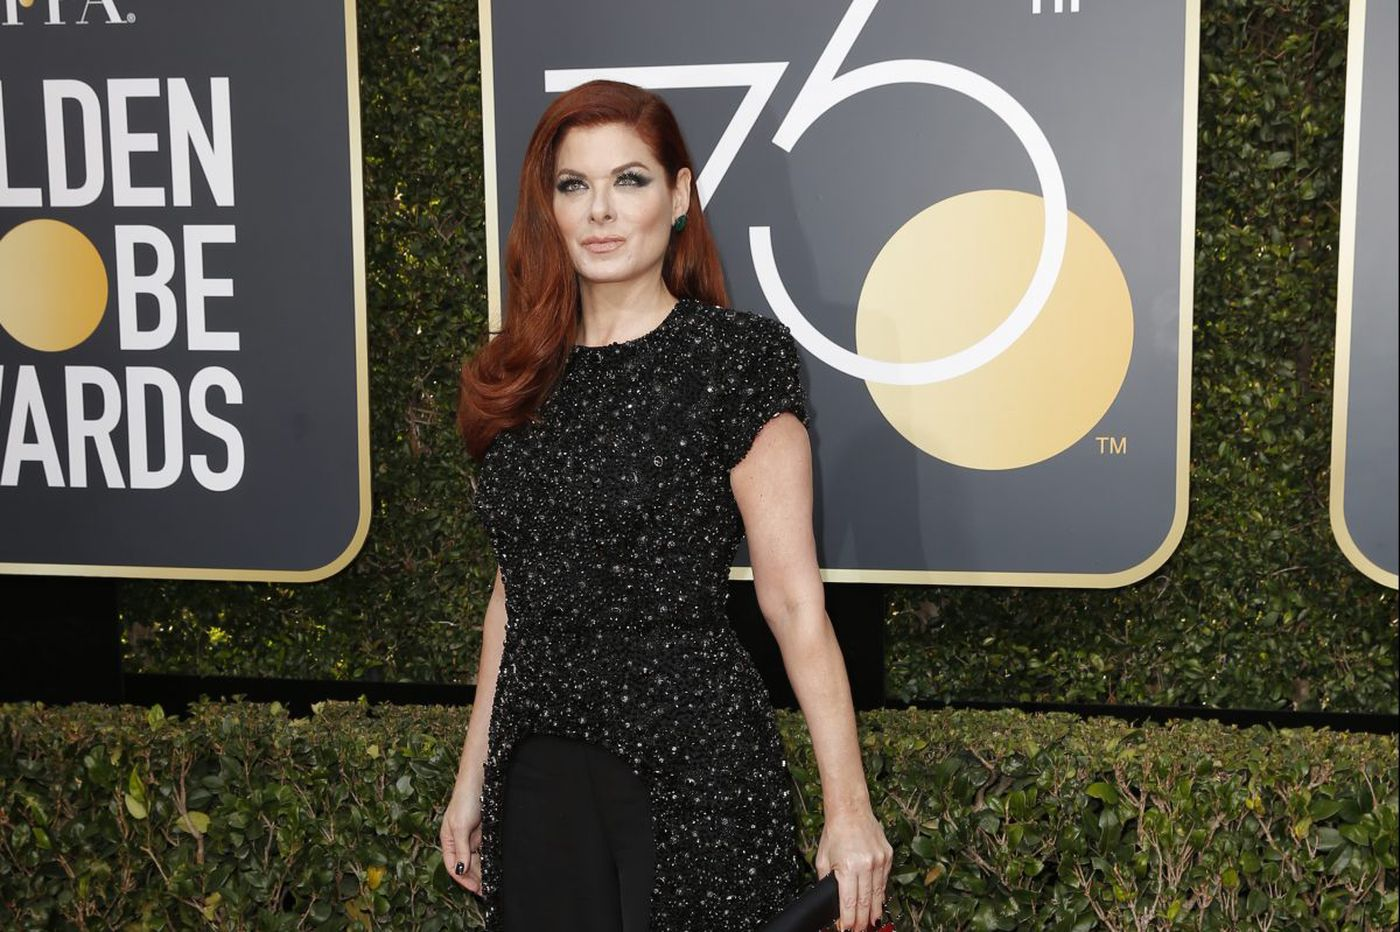 Debra Messing calls out E! on Golden Globes red carpet